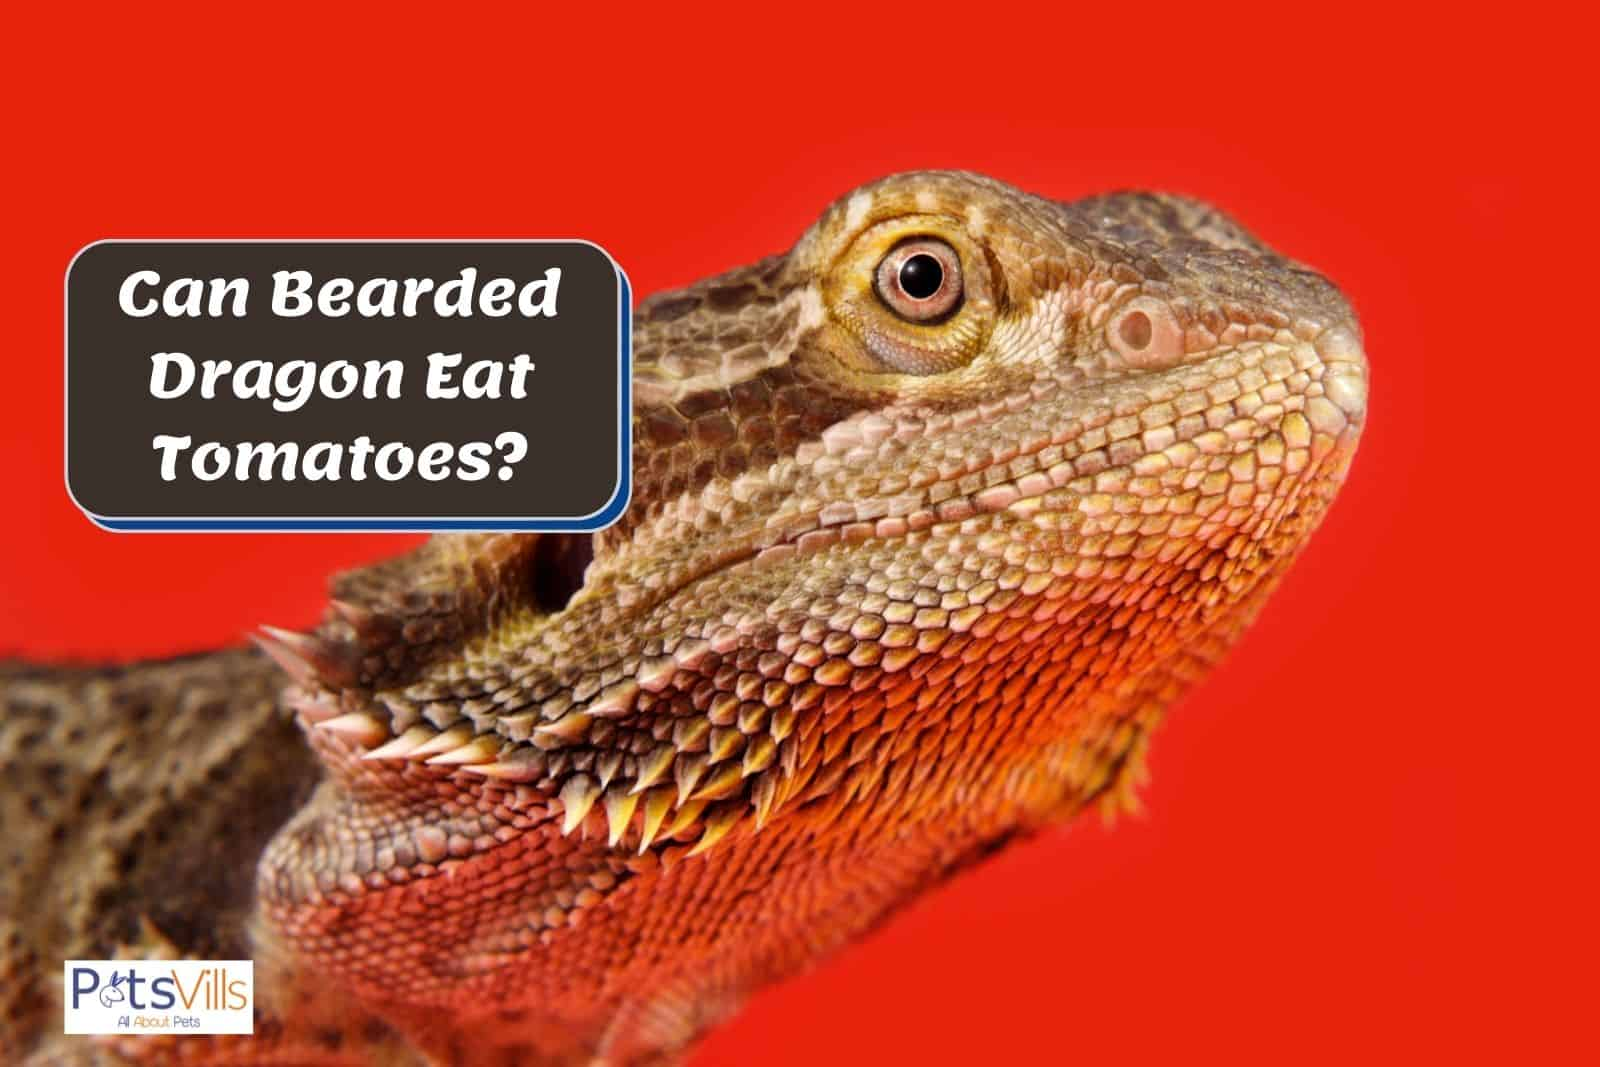 bearded dragon with red background; can bearded dragon eat tomatoes?